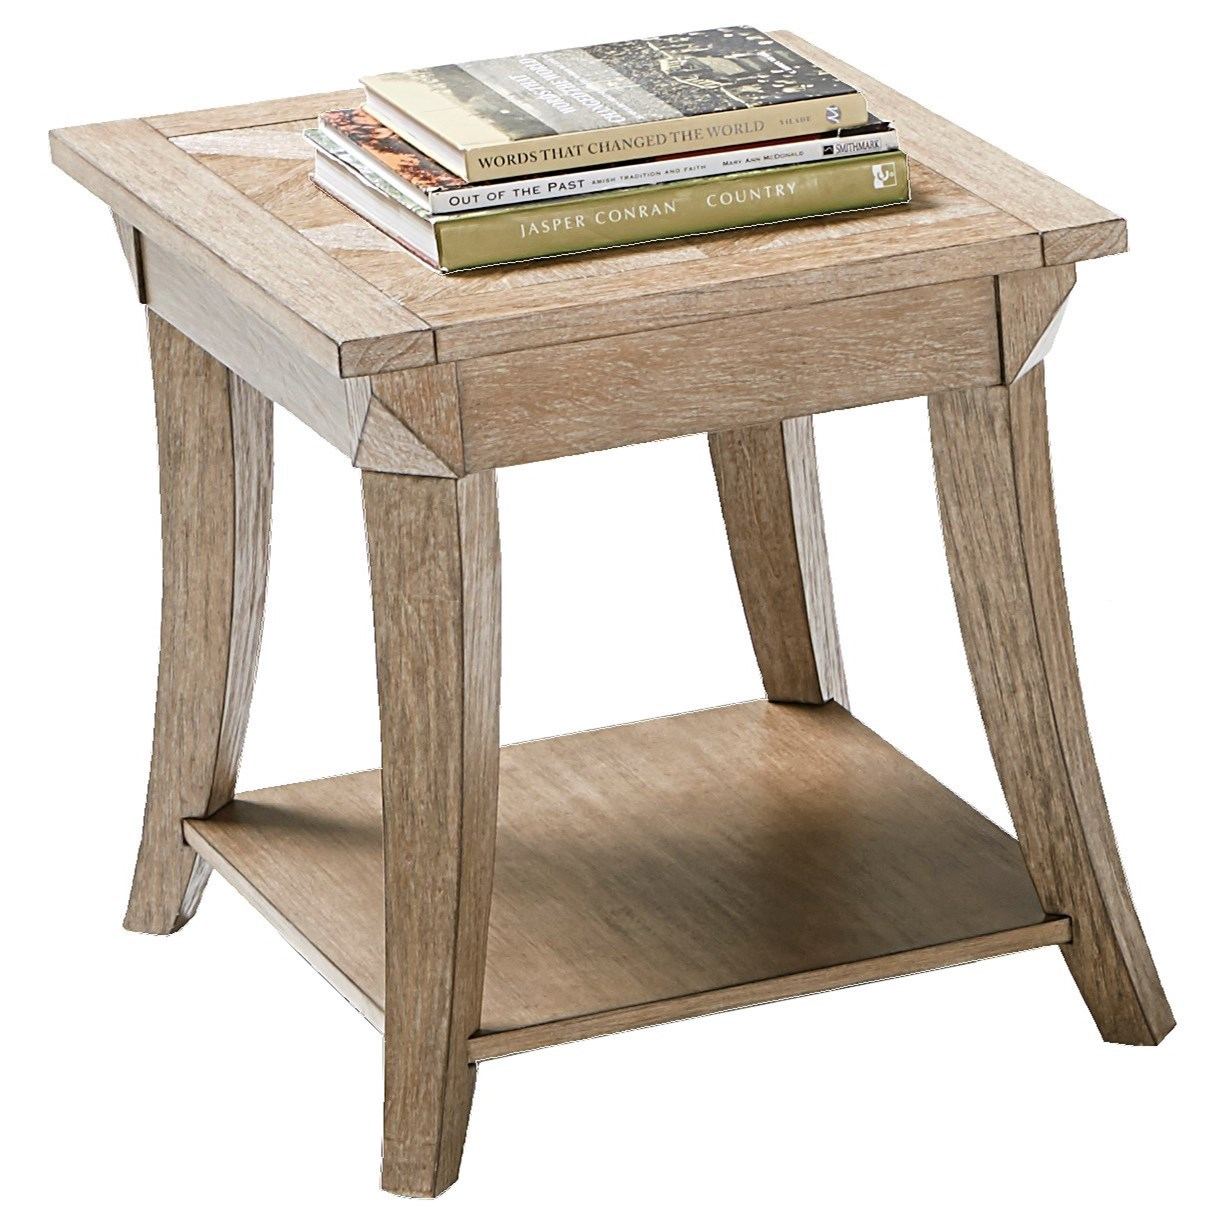 progressive furniture appeal rectangular end table with parquet products color threshold accent item number oblong coffee waterproof outdoor covers pier one imports dishes